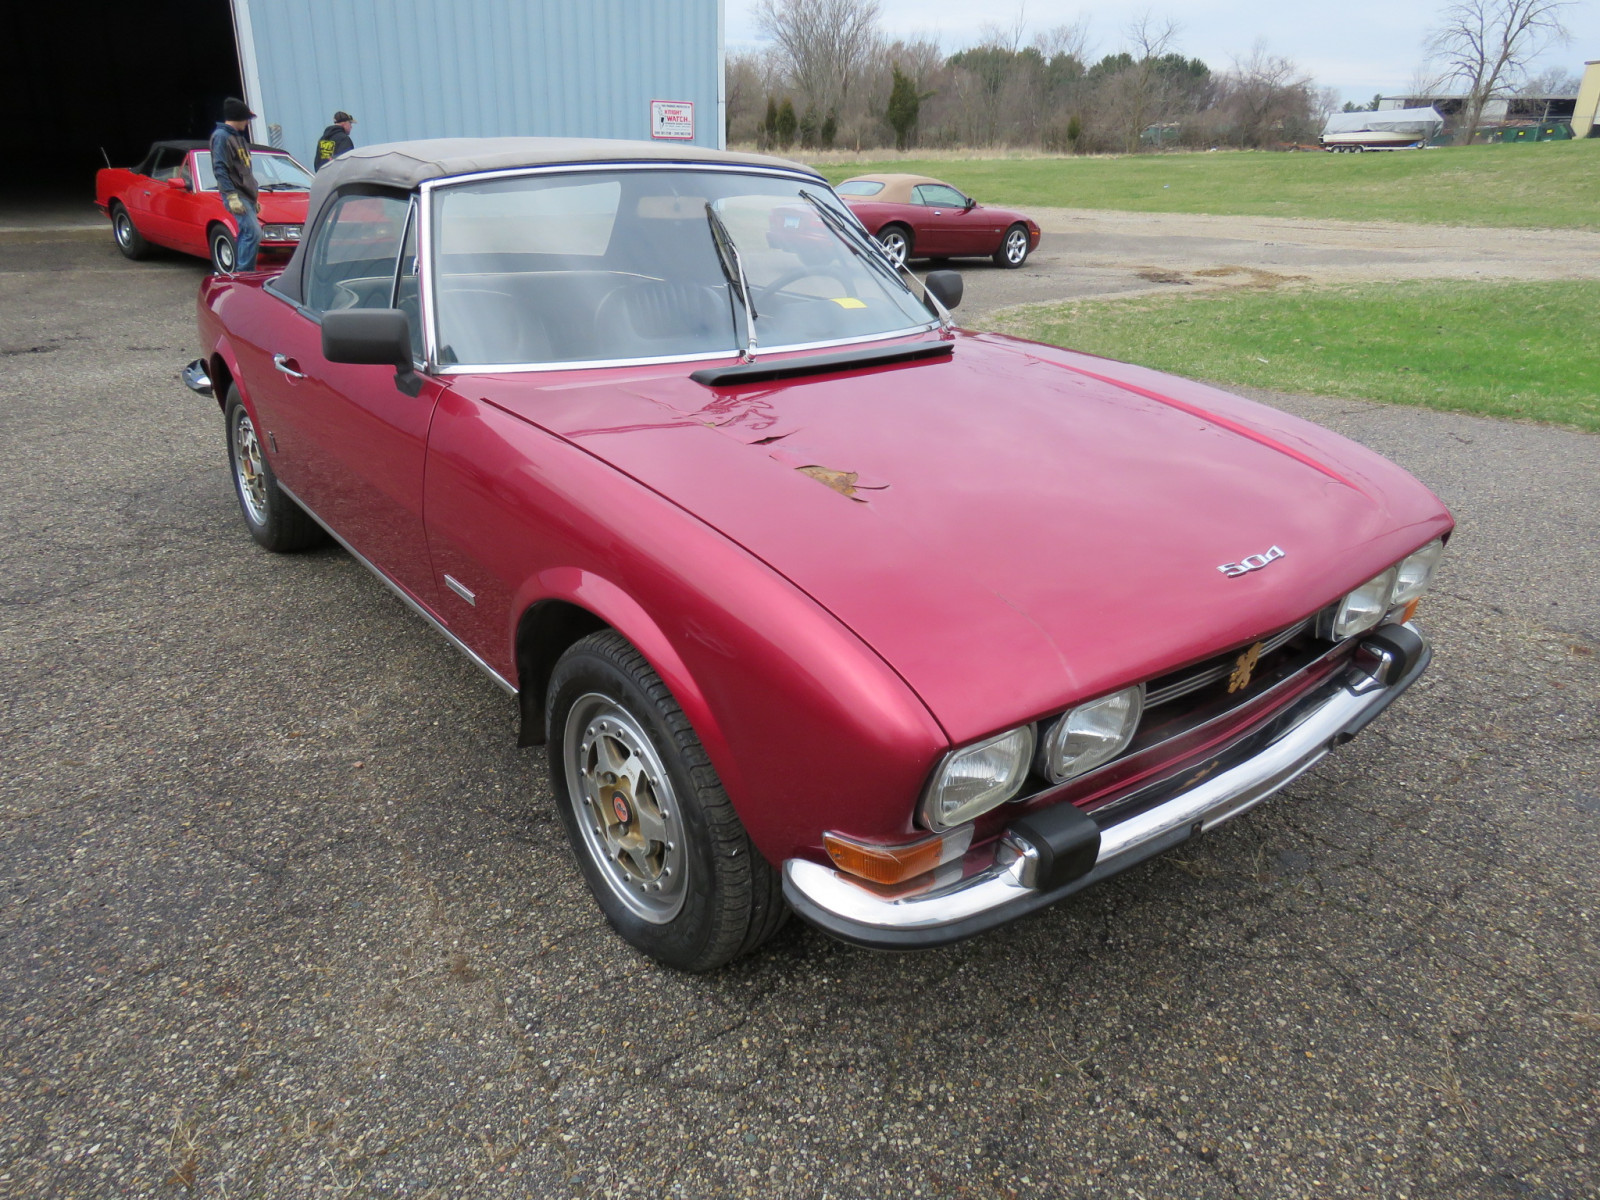 1972 Peugeot 504 Fuel Injected Convertible - Image 1